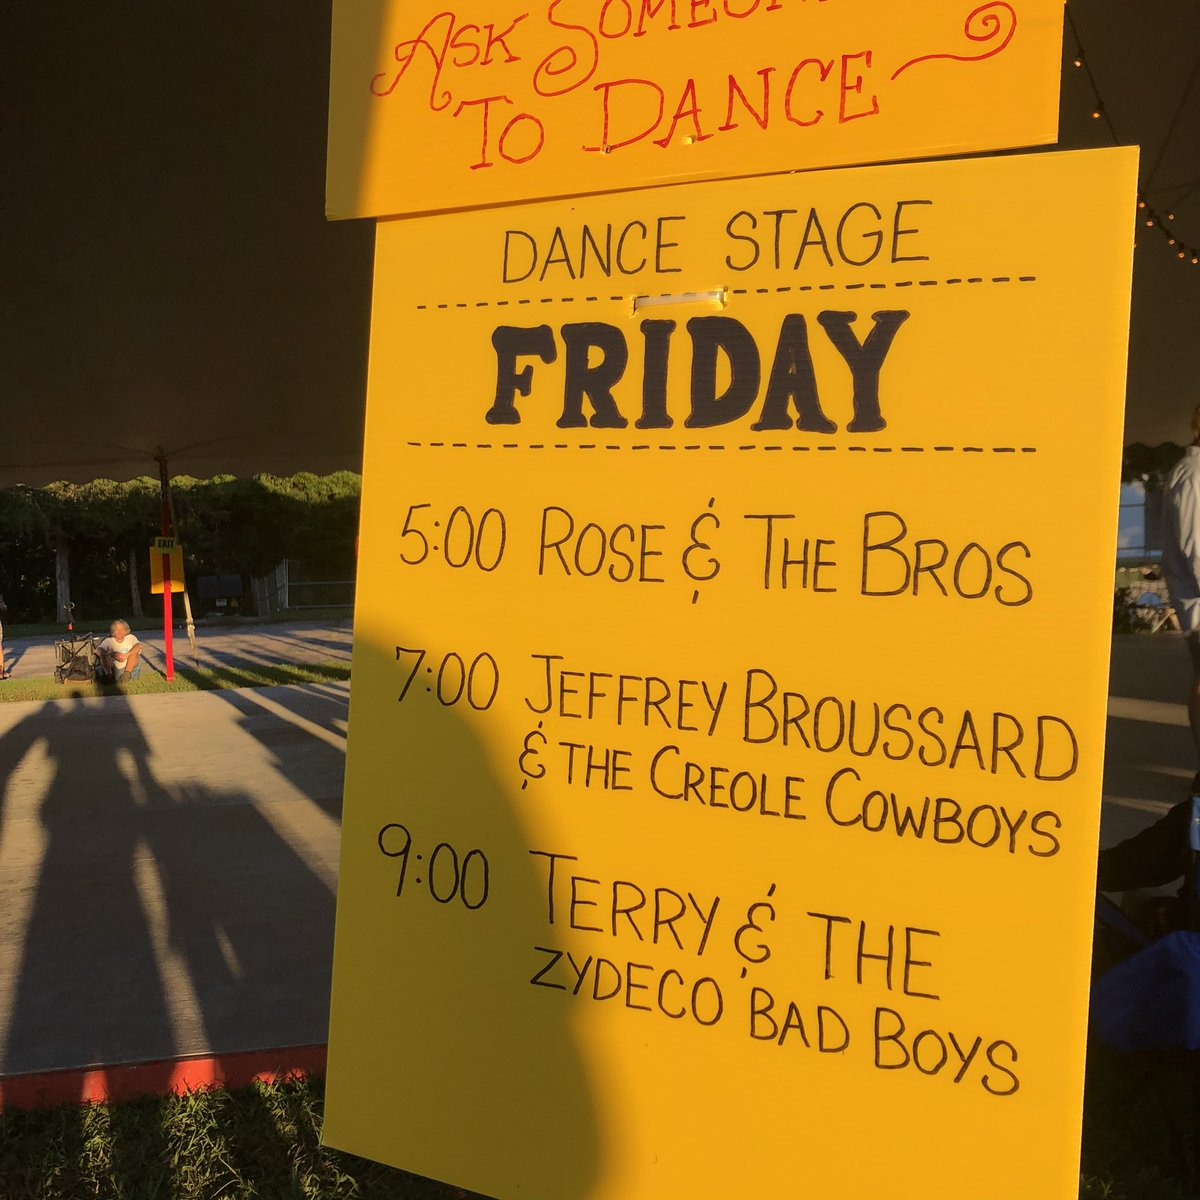 Jeffrey Broussard & the Creole Cowboys up next in Dance Tent